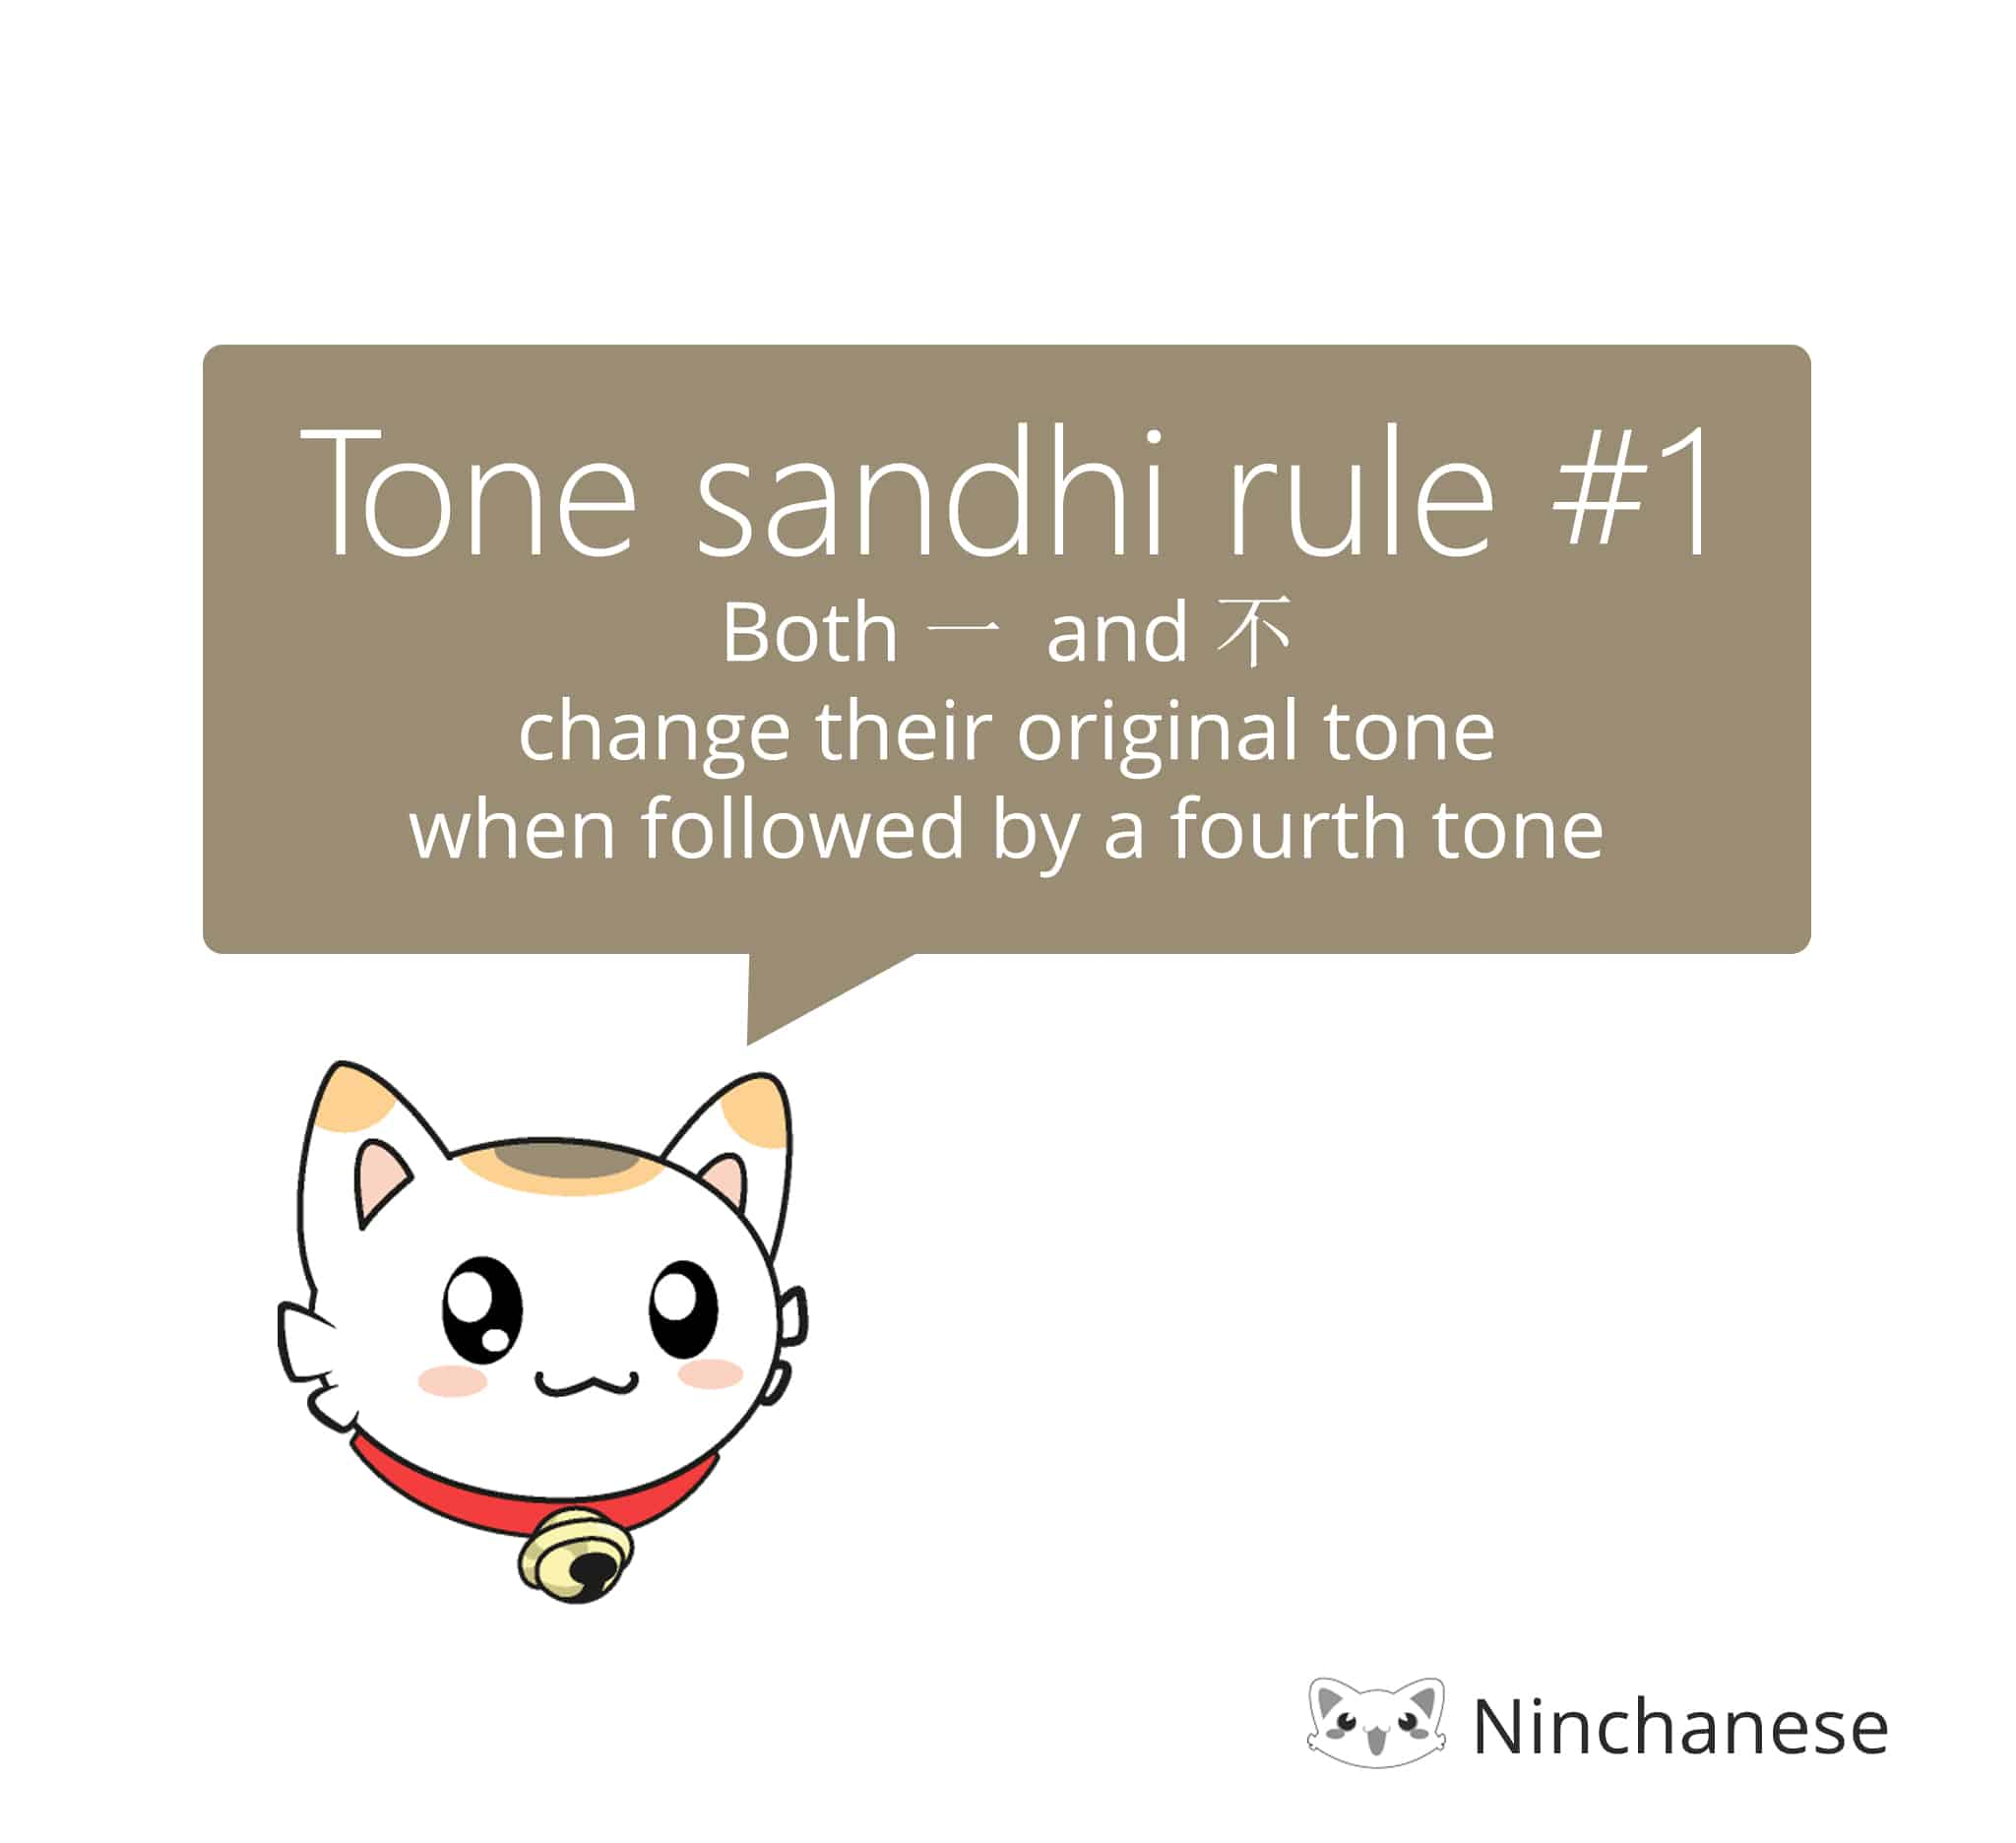 tone sandhi rules for the Chinese characters 不 and 一